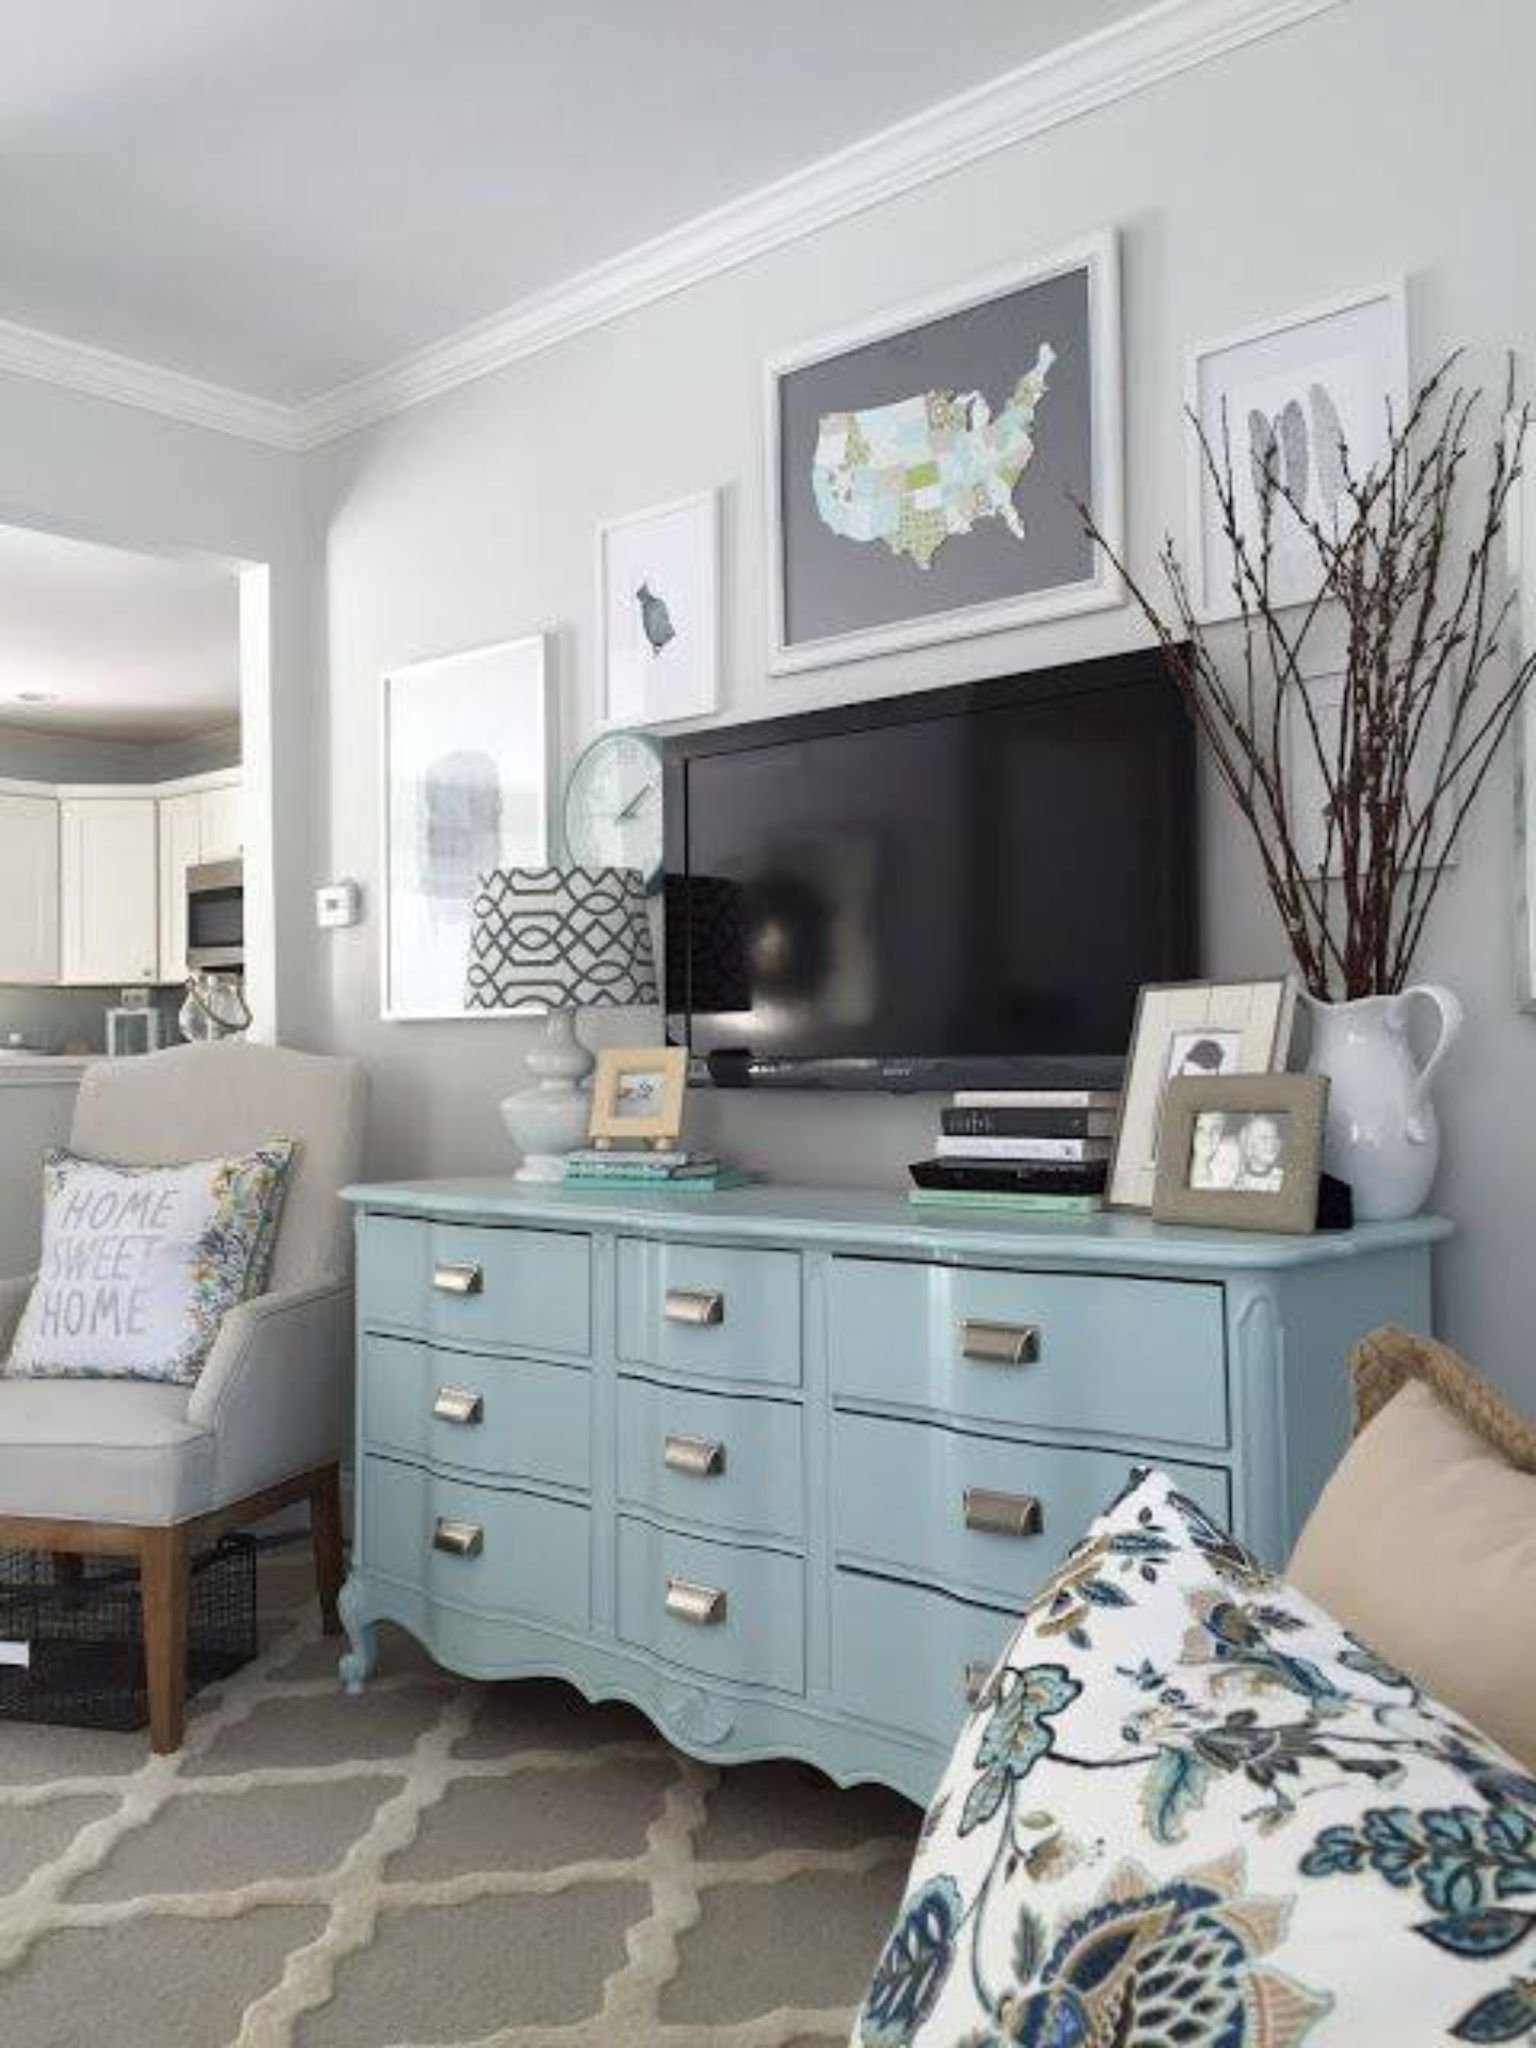 Painted Dresser In Living Room Affordable Decor Cheap Home Decor Inexpensive Decor